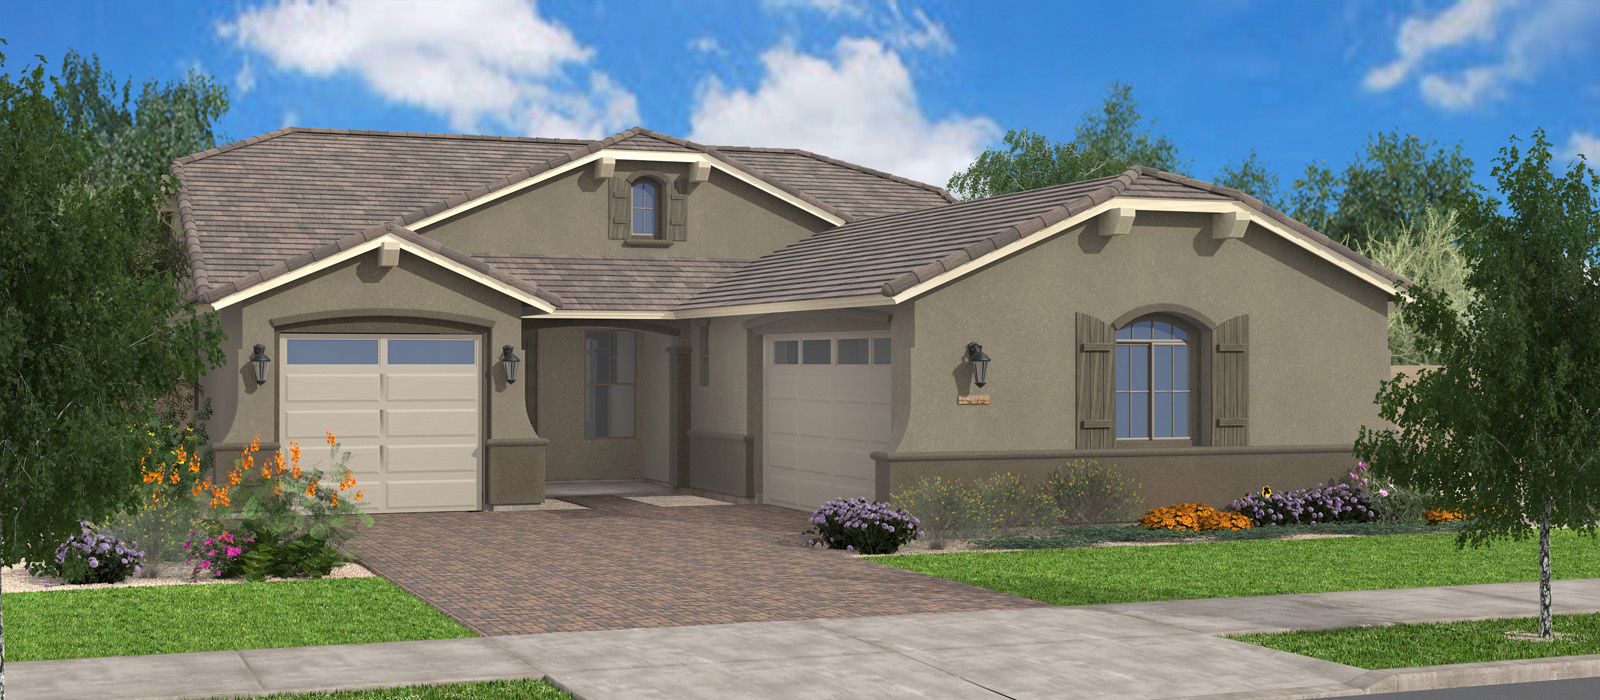 Indian Wells Oasis At Queen Creek Station By Fulton Homes